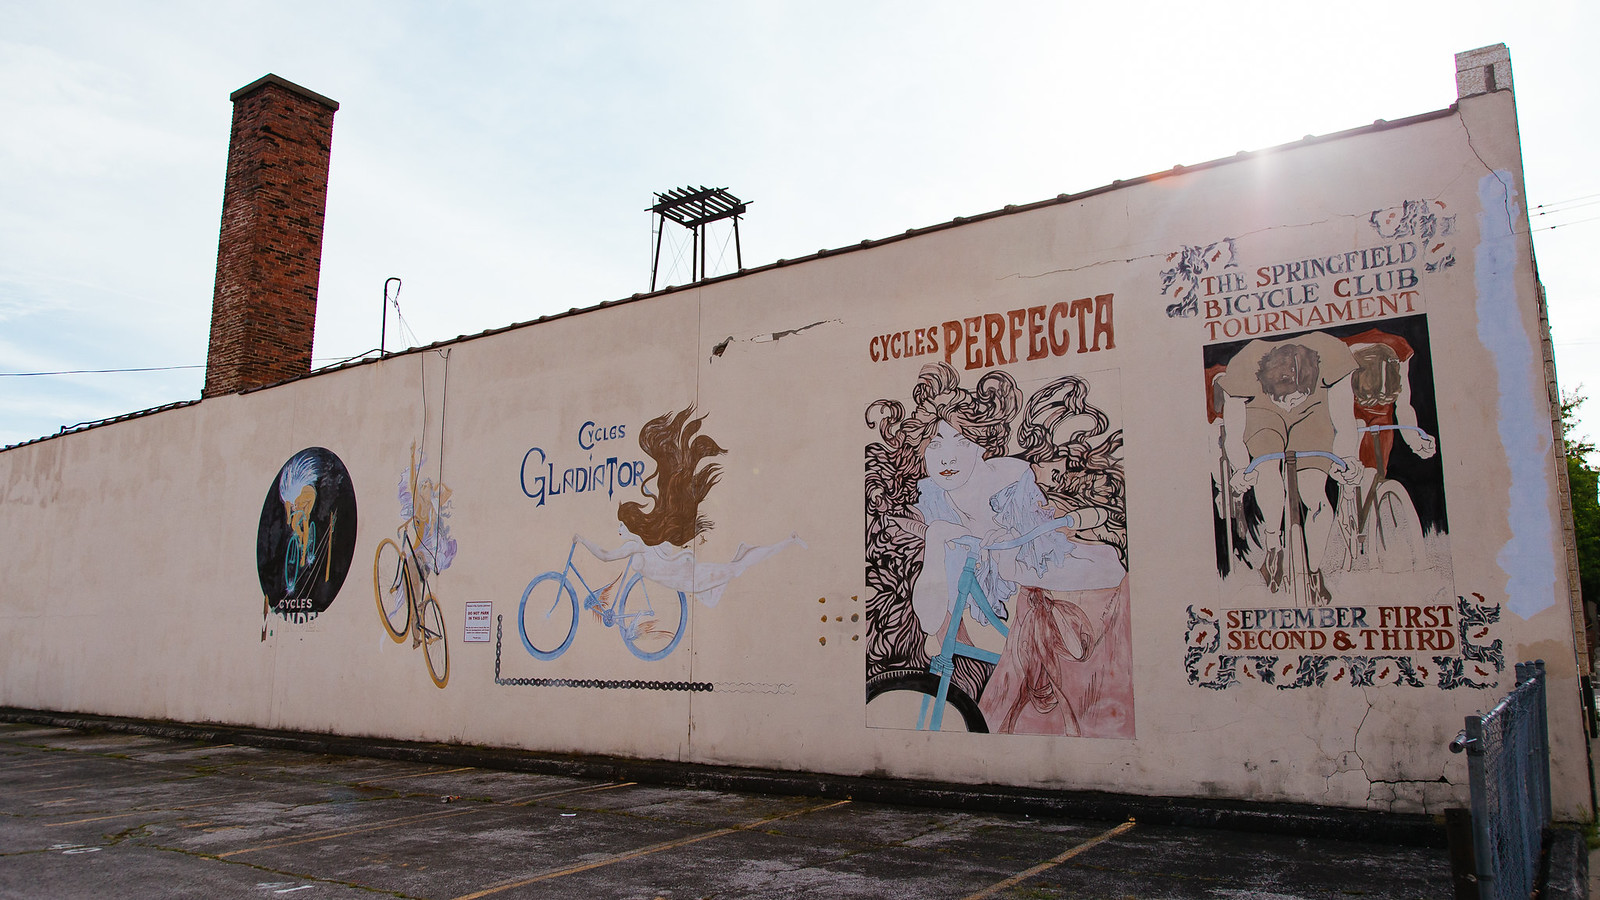 Cycling mural, downtown Springfield, Missouri